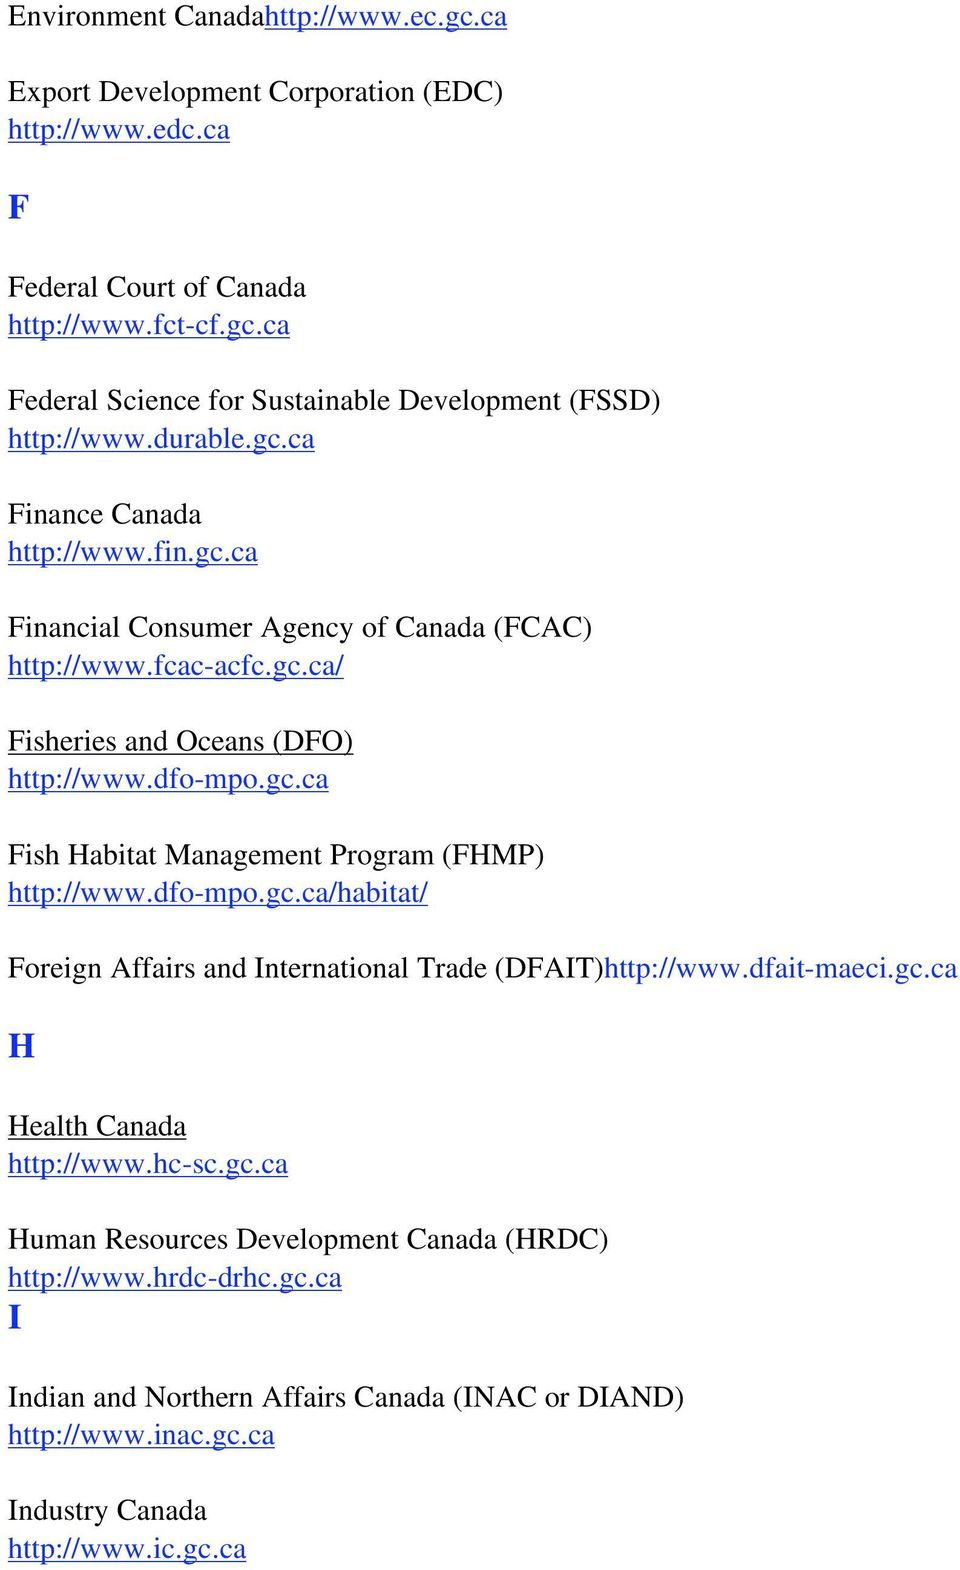 dfo-mpo.gc.ca/habitat/ Foreign Affairs and International Trade (DFAIT)http://www.dfait-maeci.gc.ca H Health Canada http://www.hc-sc.gc.ca Human Resources Development Canada (HRDC) http://www.